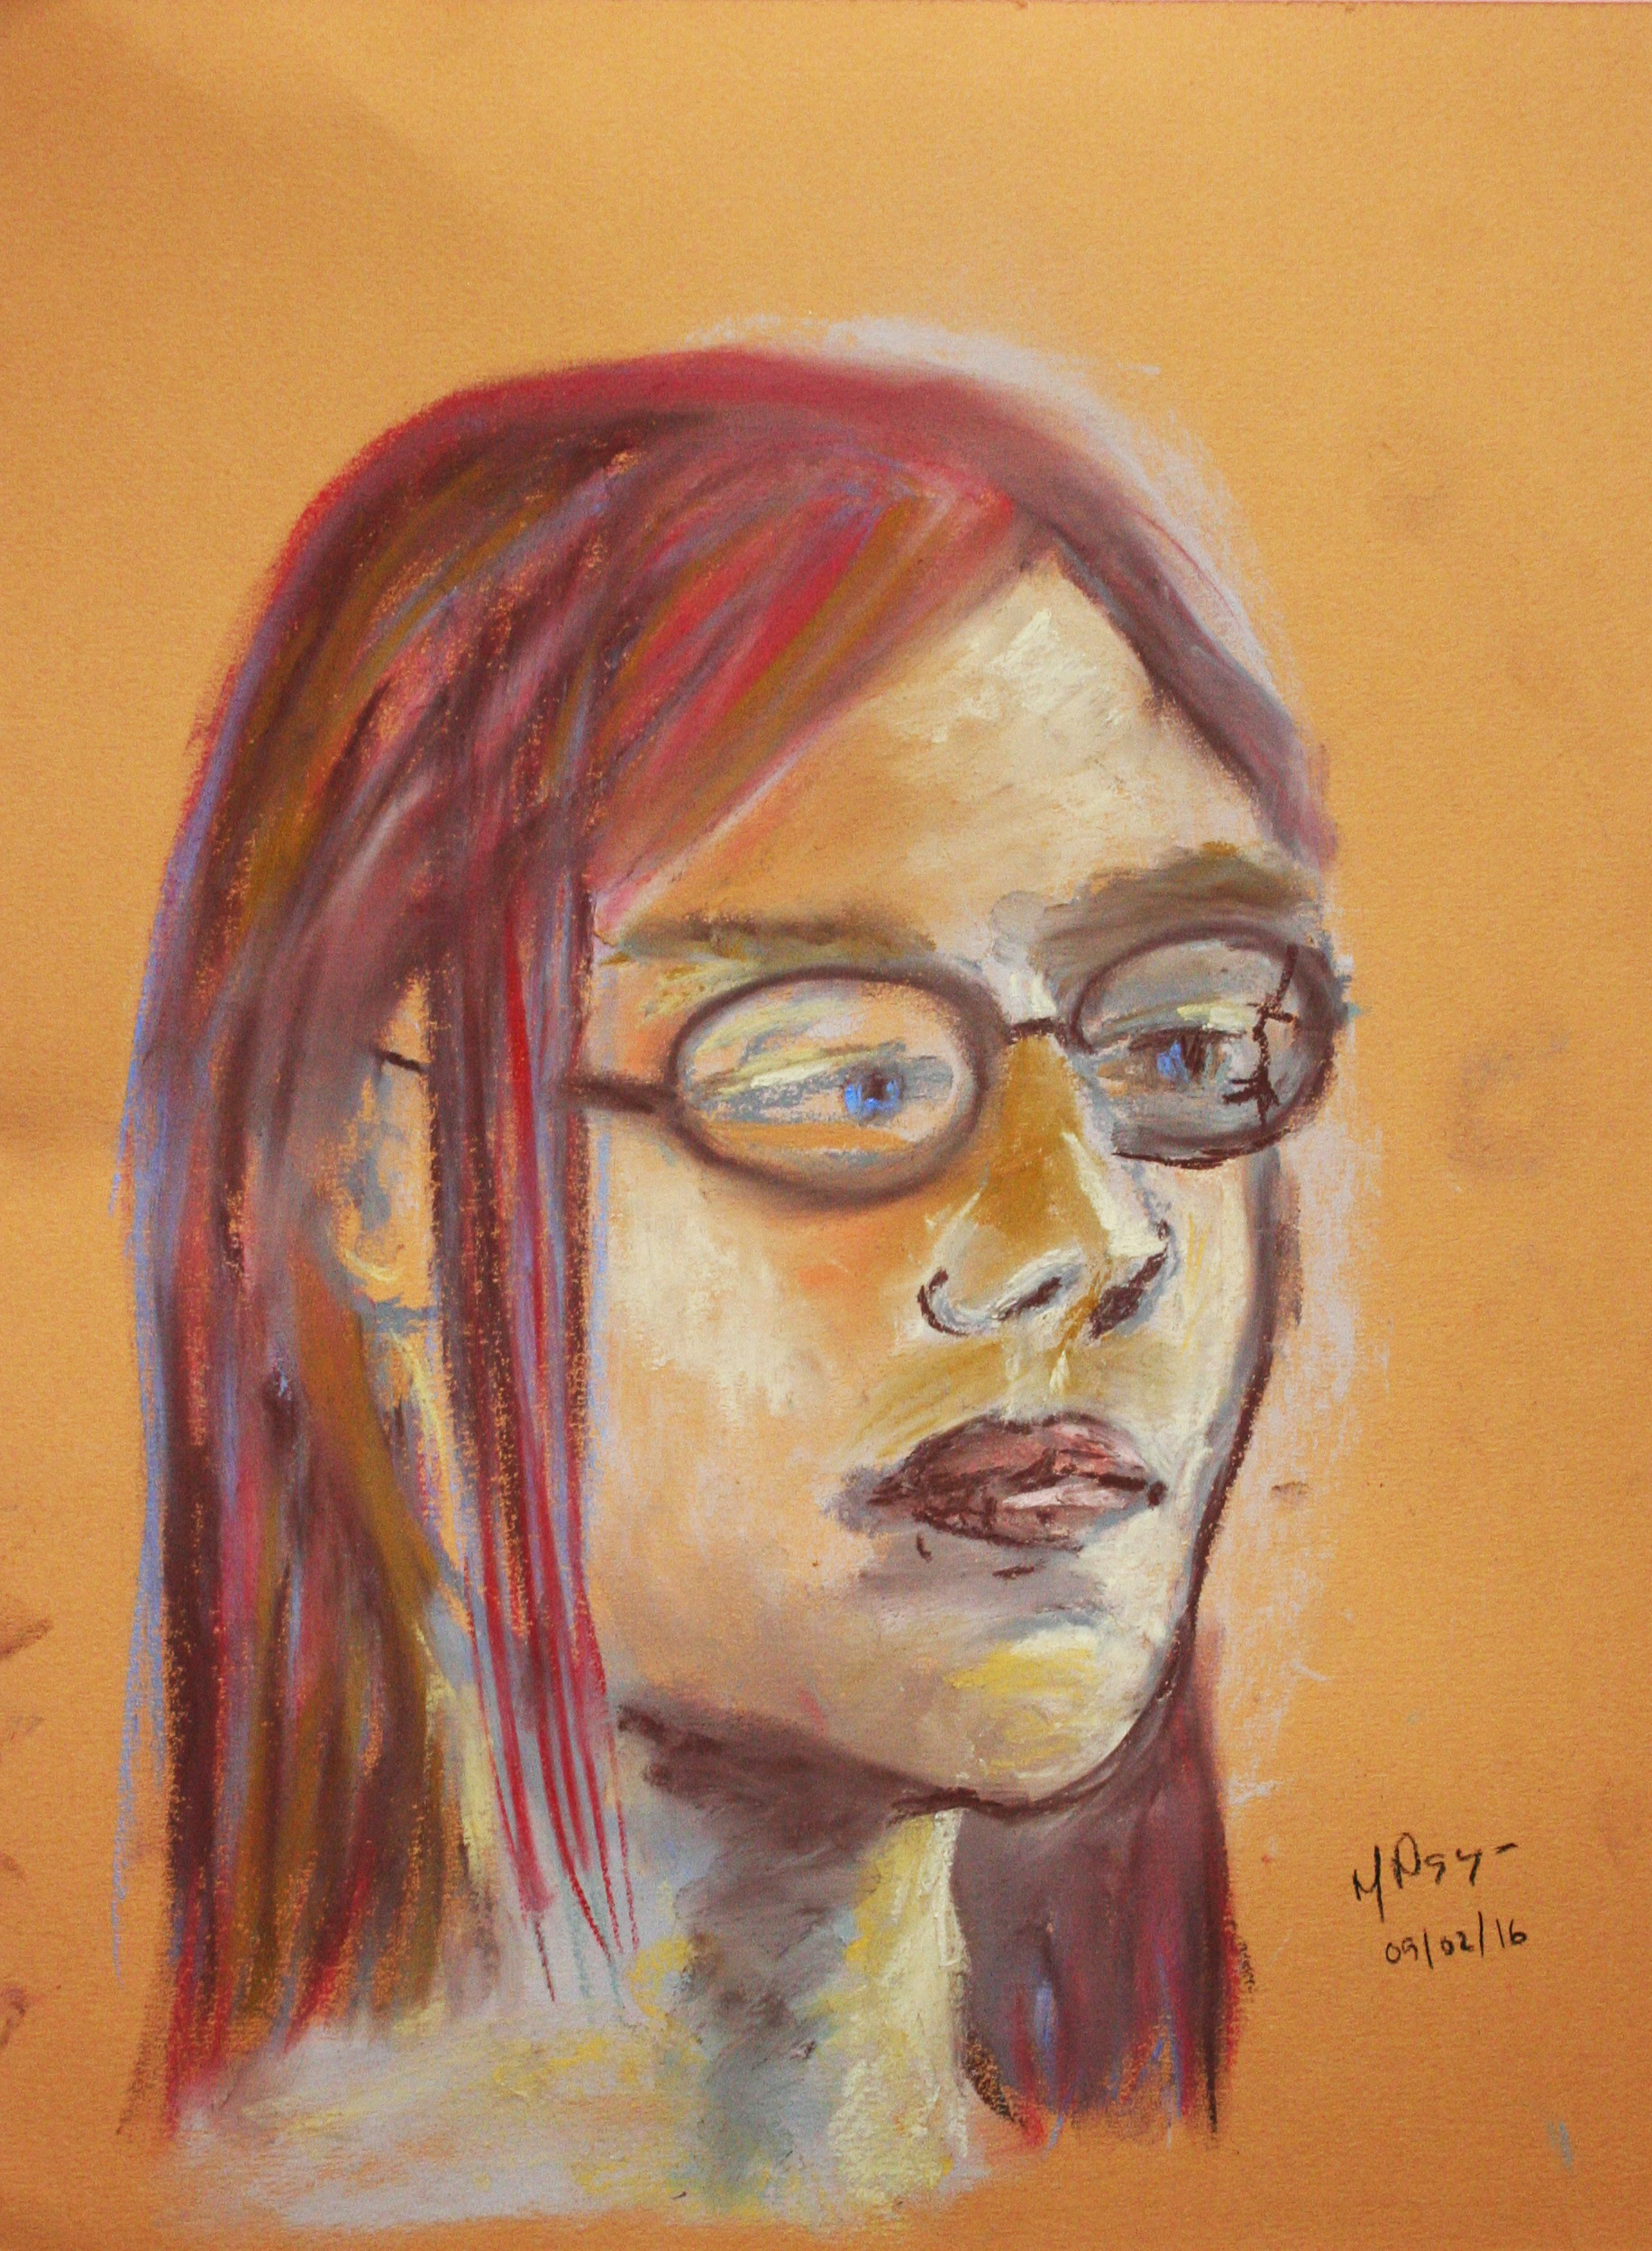 Michelle Leyden Nguyen did this 2-hour pastel drawing.